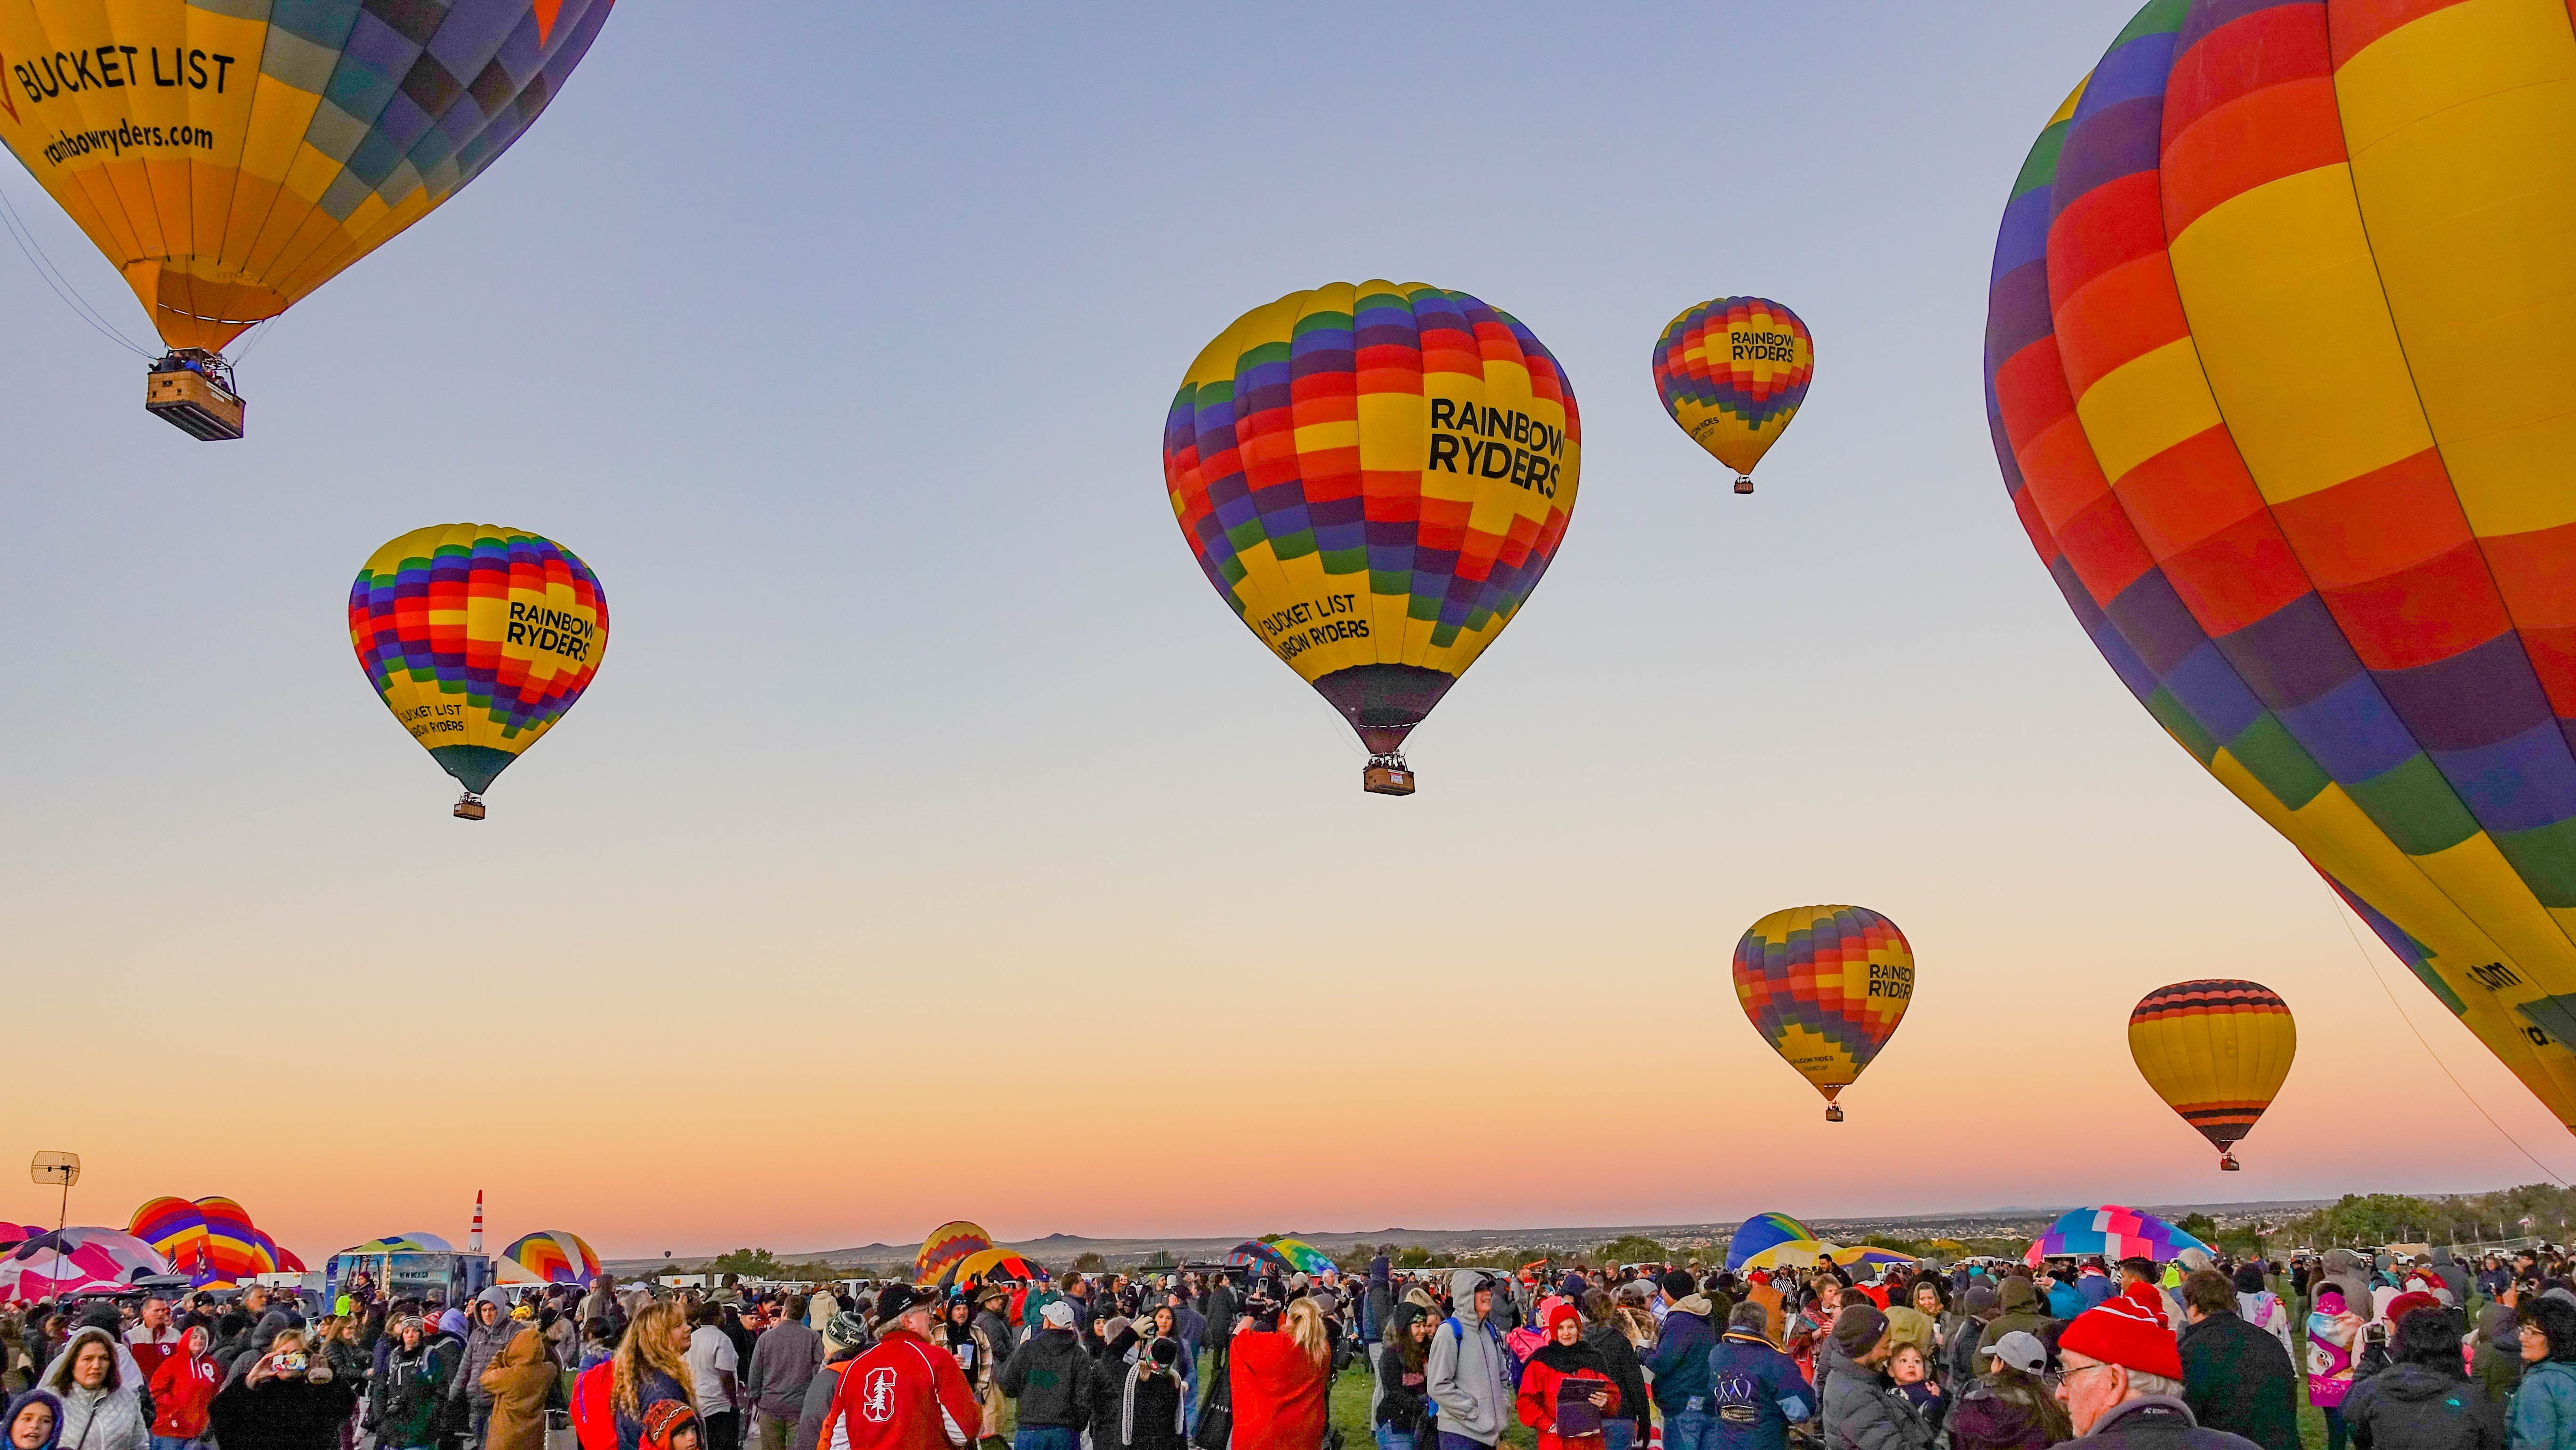 people gathering below multicolored hot air balloons